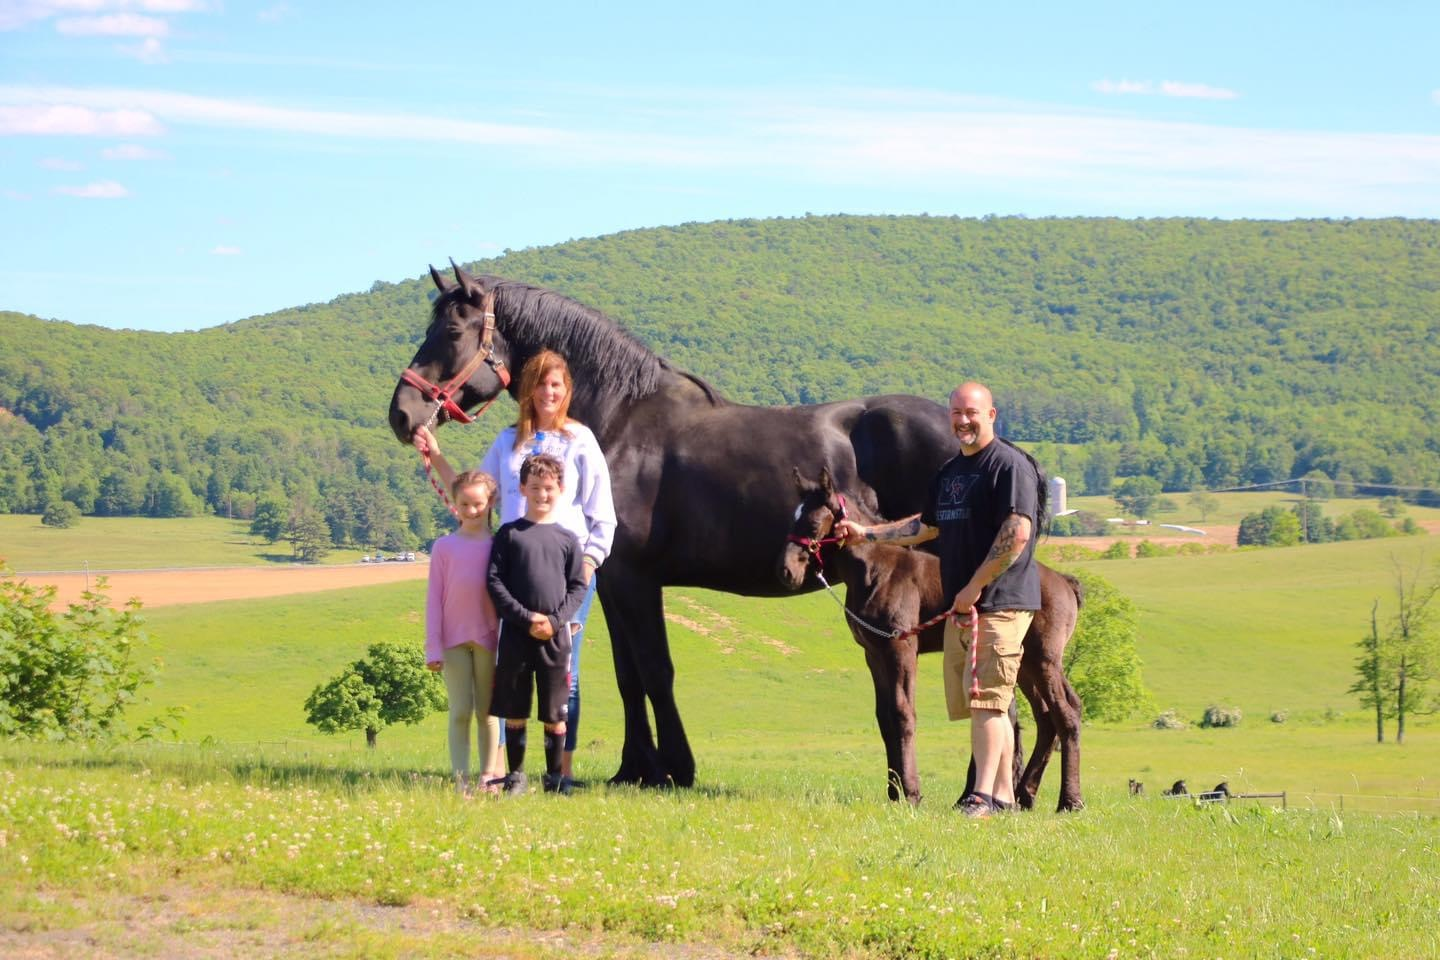 Renaud family posing with their Percheron mare and her filly, Ruby in a field.